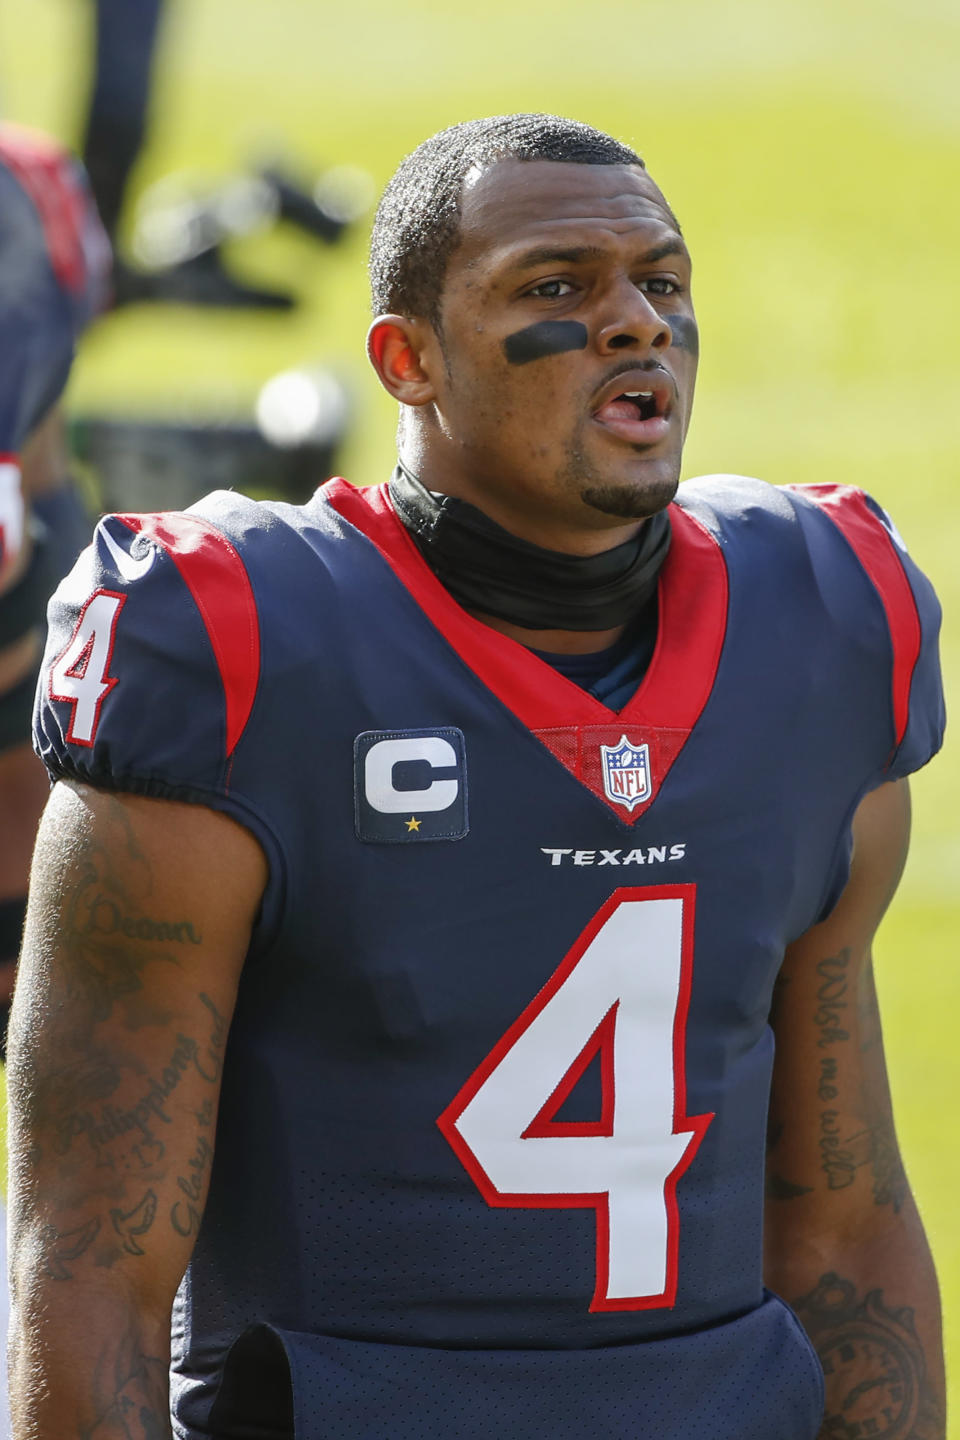 FILE- In this Dec. 13, 2020, file photo, Houston Texans quarterback Deshaun Watson walks off the field after warm ups before an NFL football game against the Chicago Bears in Chicago. On Friday, April 9, 2021, a judge has ordered that the name of one of the 22 women who have filed lawsuits accusing Watson of sexual assault and harassment must be made public. (AP Photo/Kamil Krzaczynski)